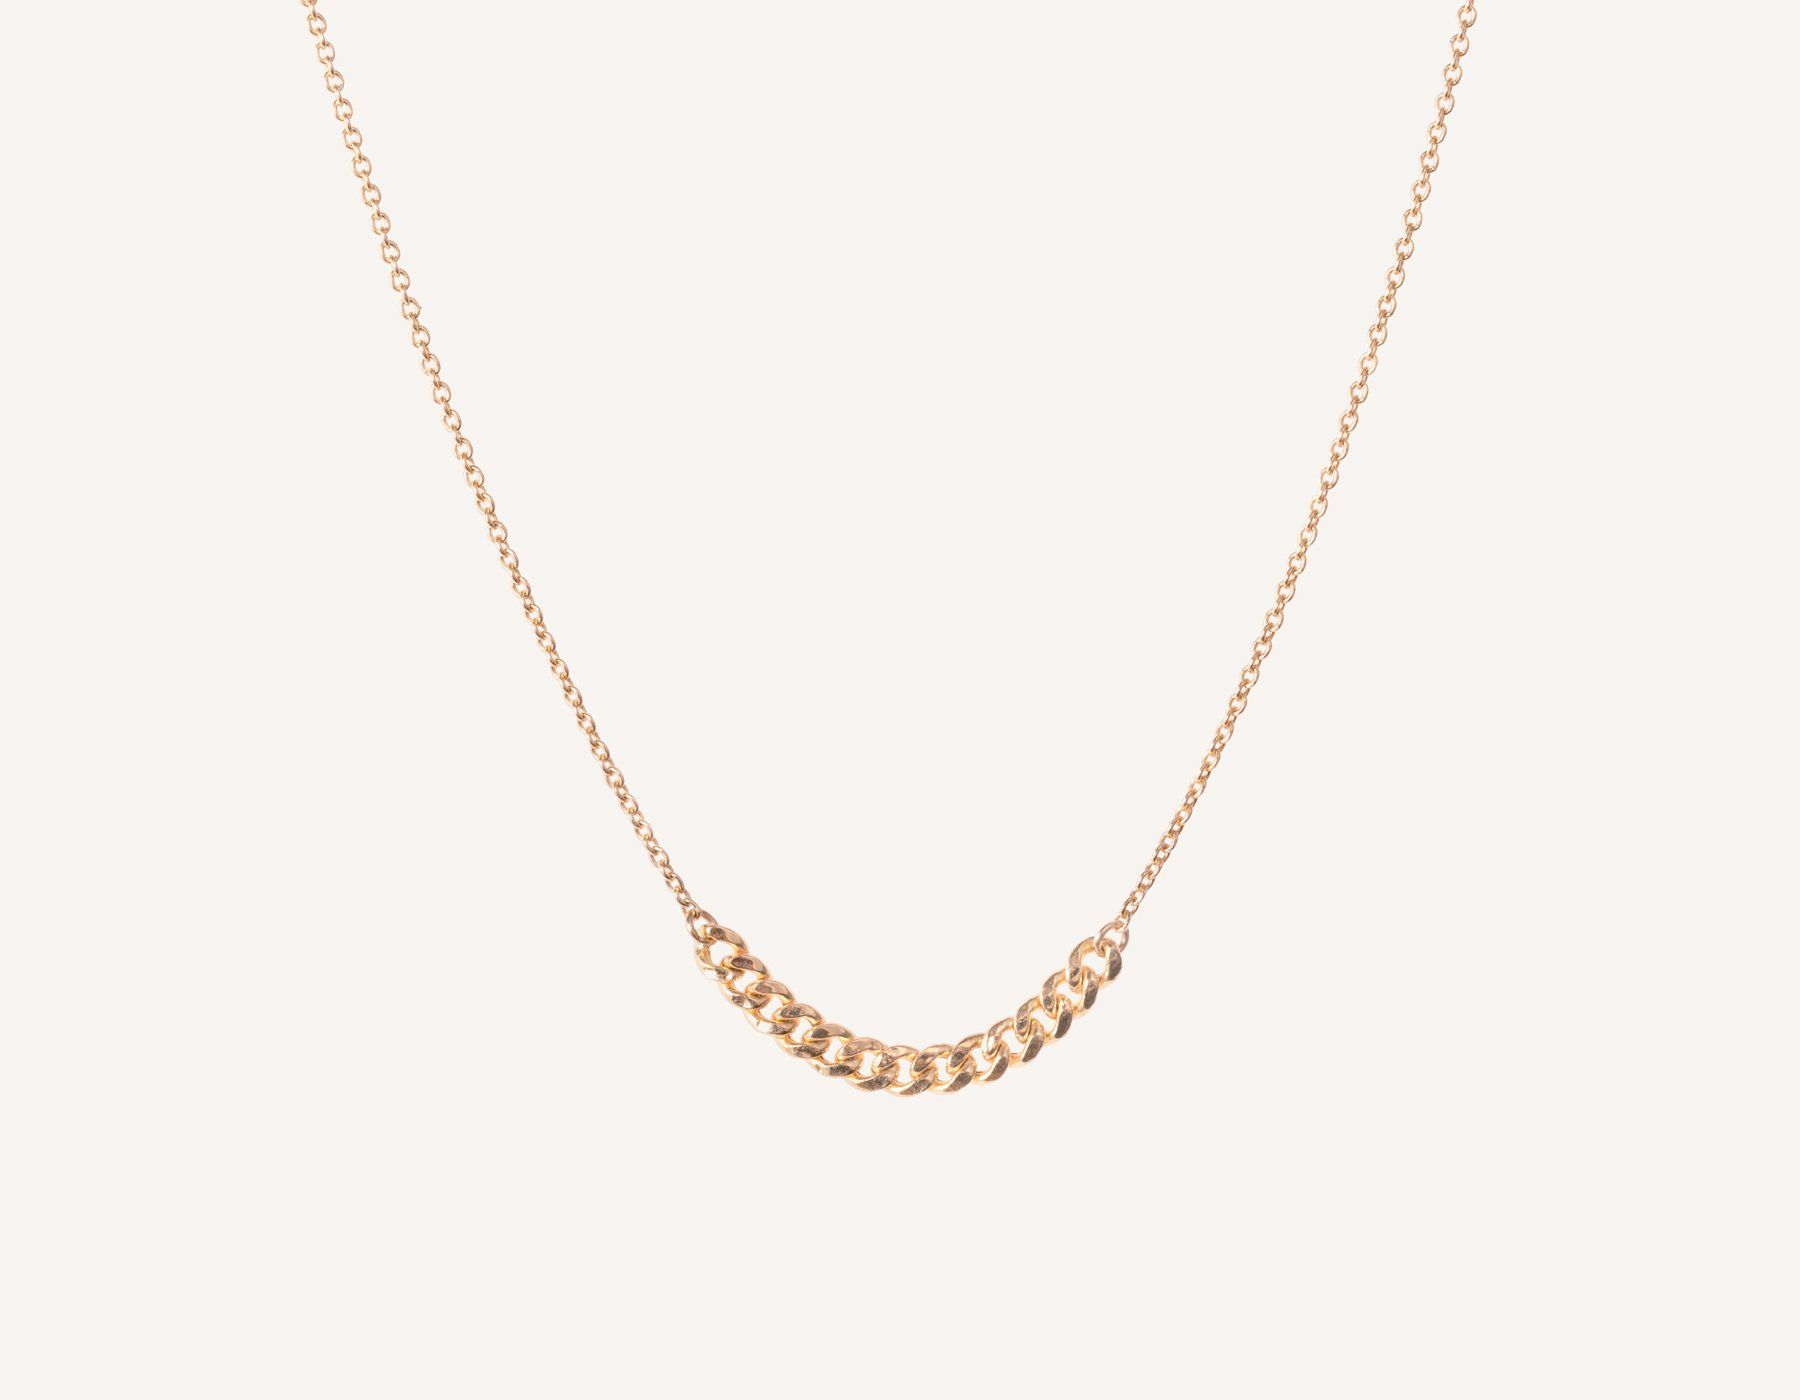 9f5ade700ff7 Simple classic chain 14k solid gold Interlink Necklace Vrai and Oro, 14K  Rose Gold